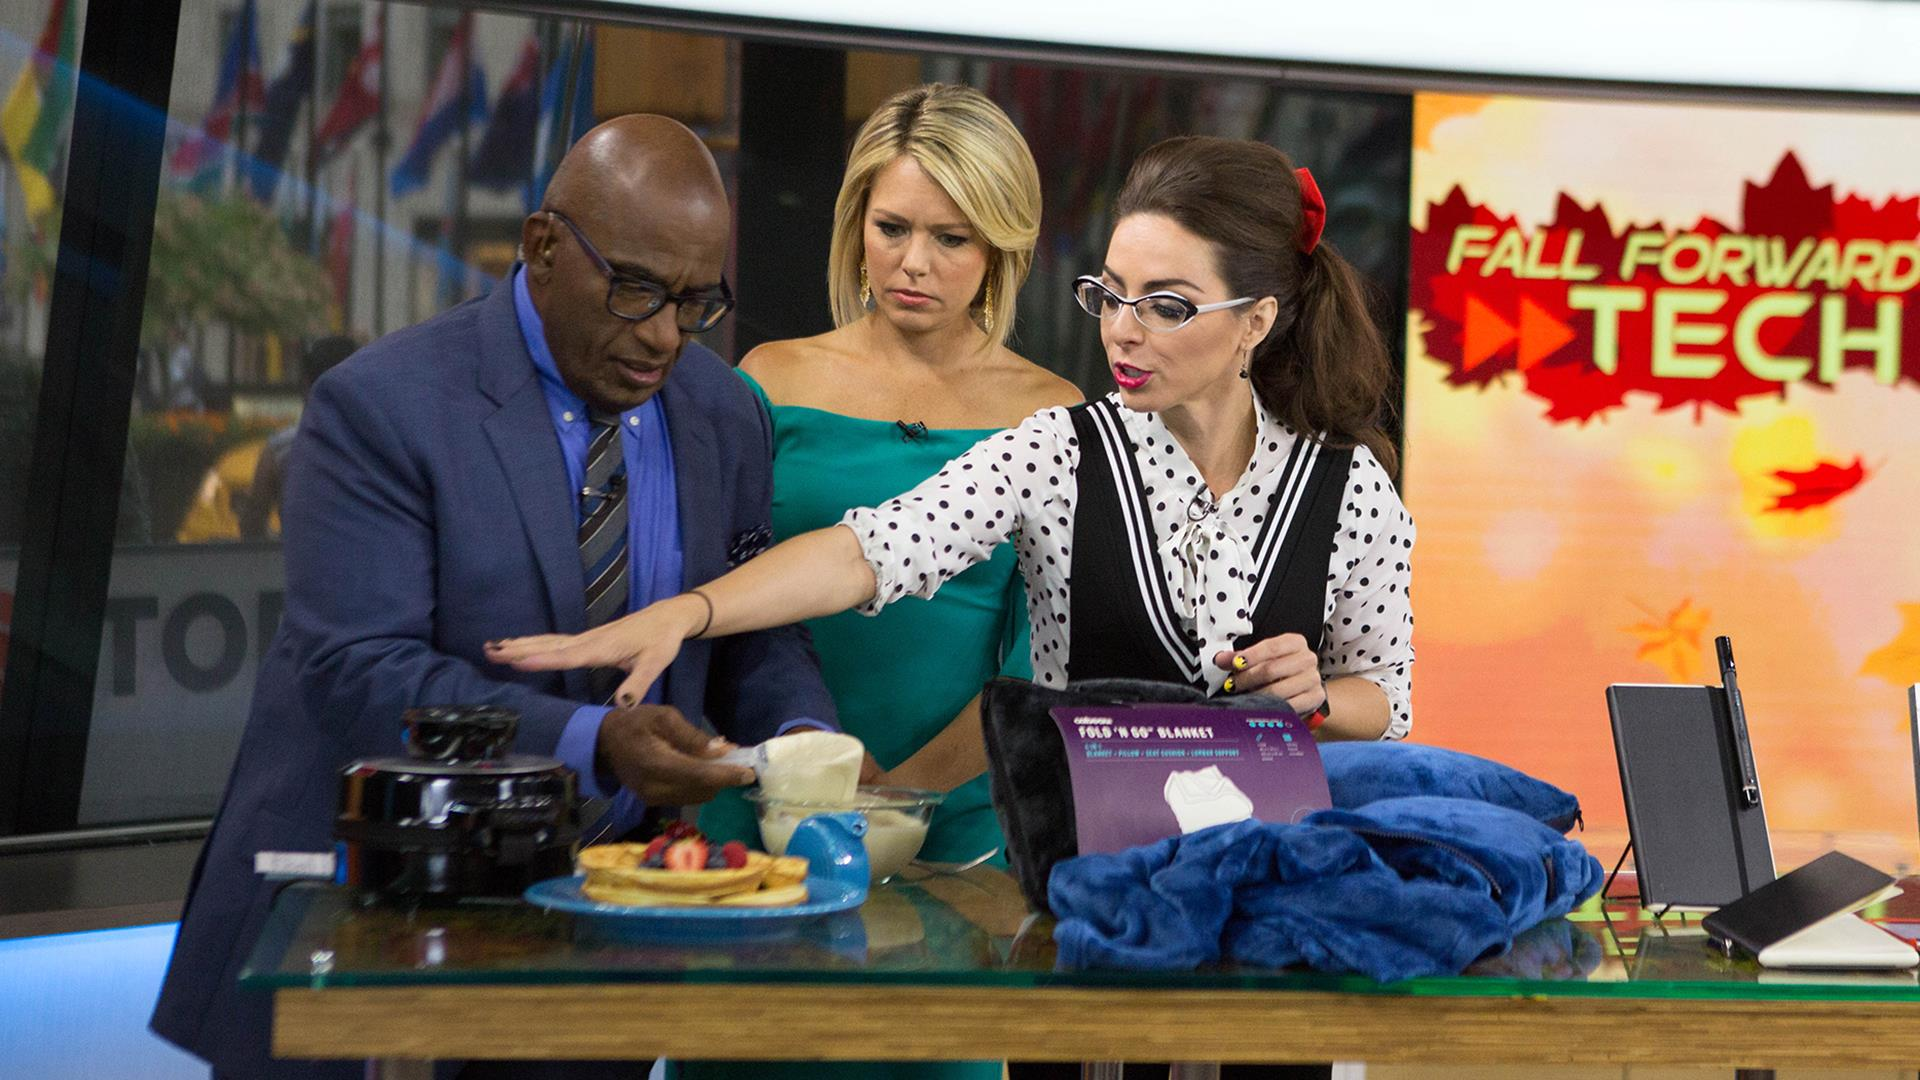 Volcano waffle maker, Star Wars media chair: Great gadgets for fall - NBC News